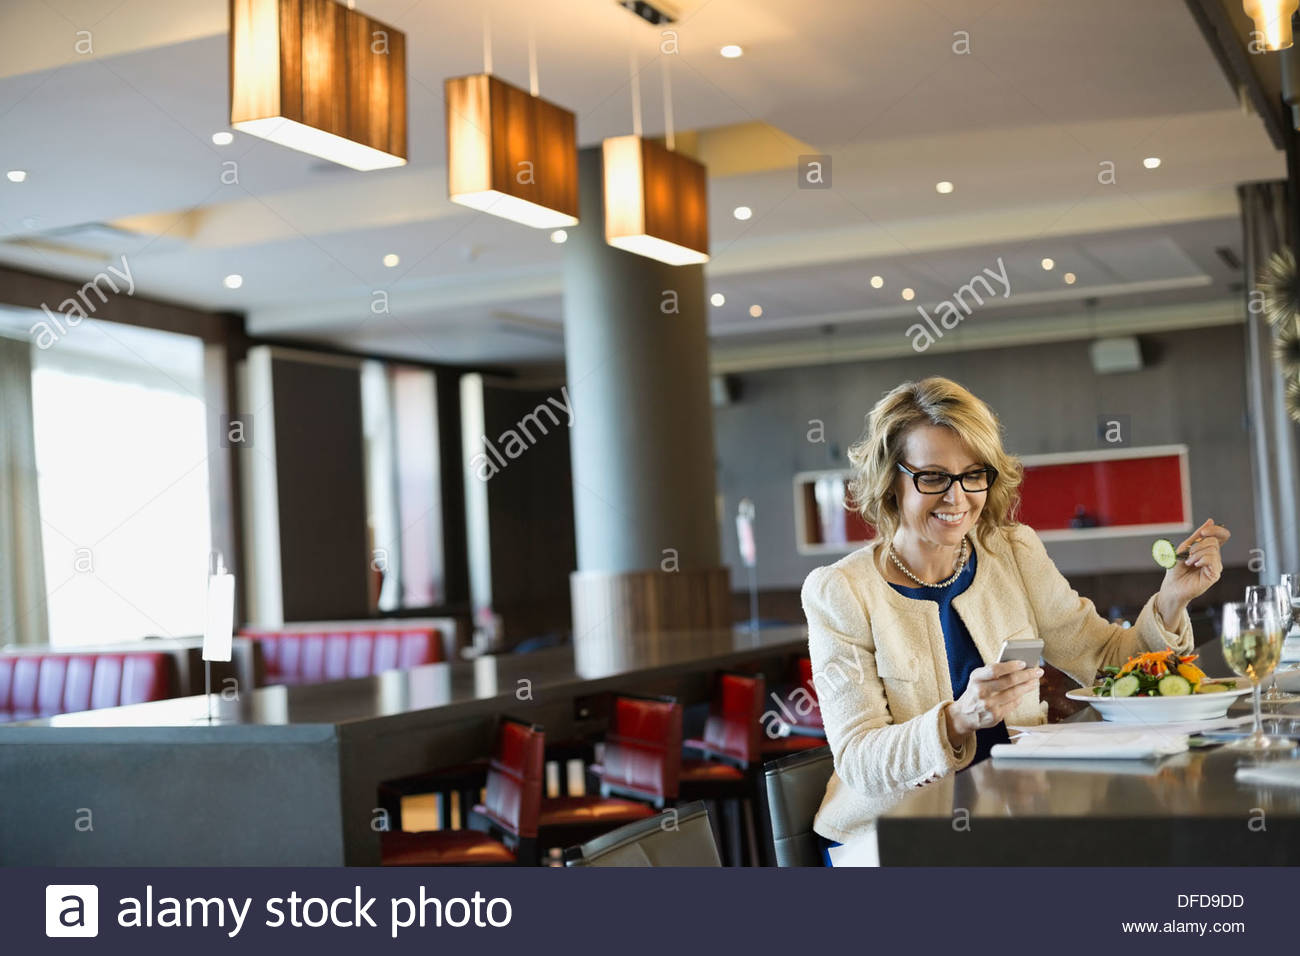 Businesswoman using smart phone while eating in hotel restaurant - Stock Image